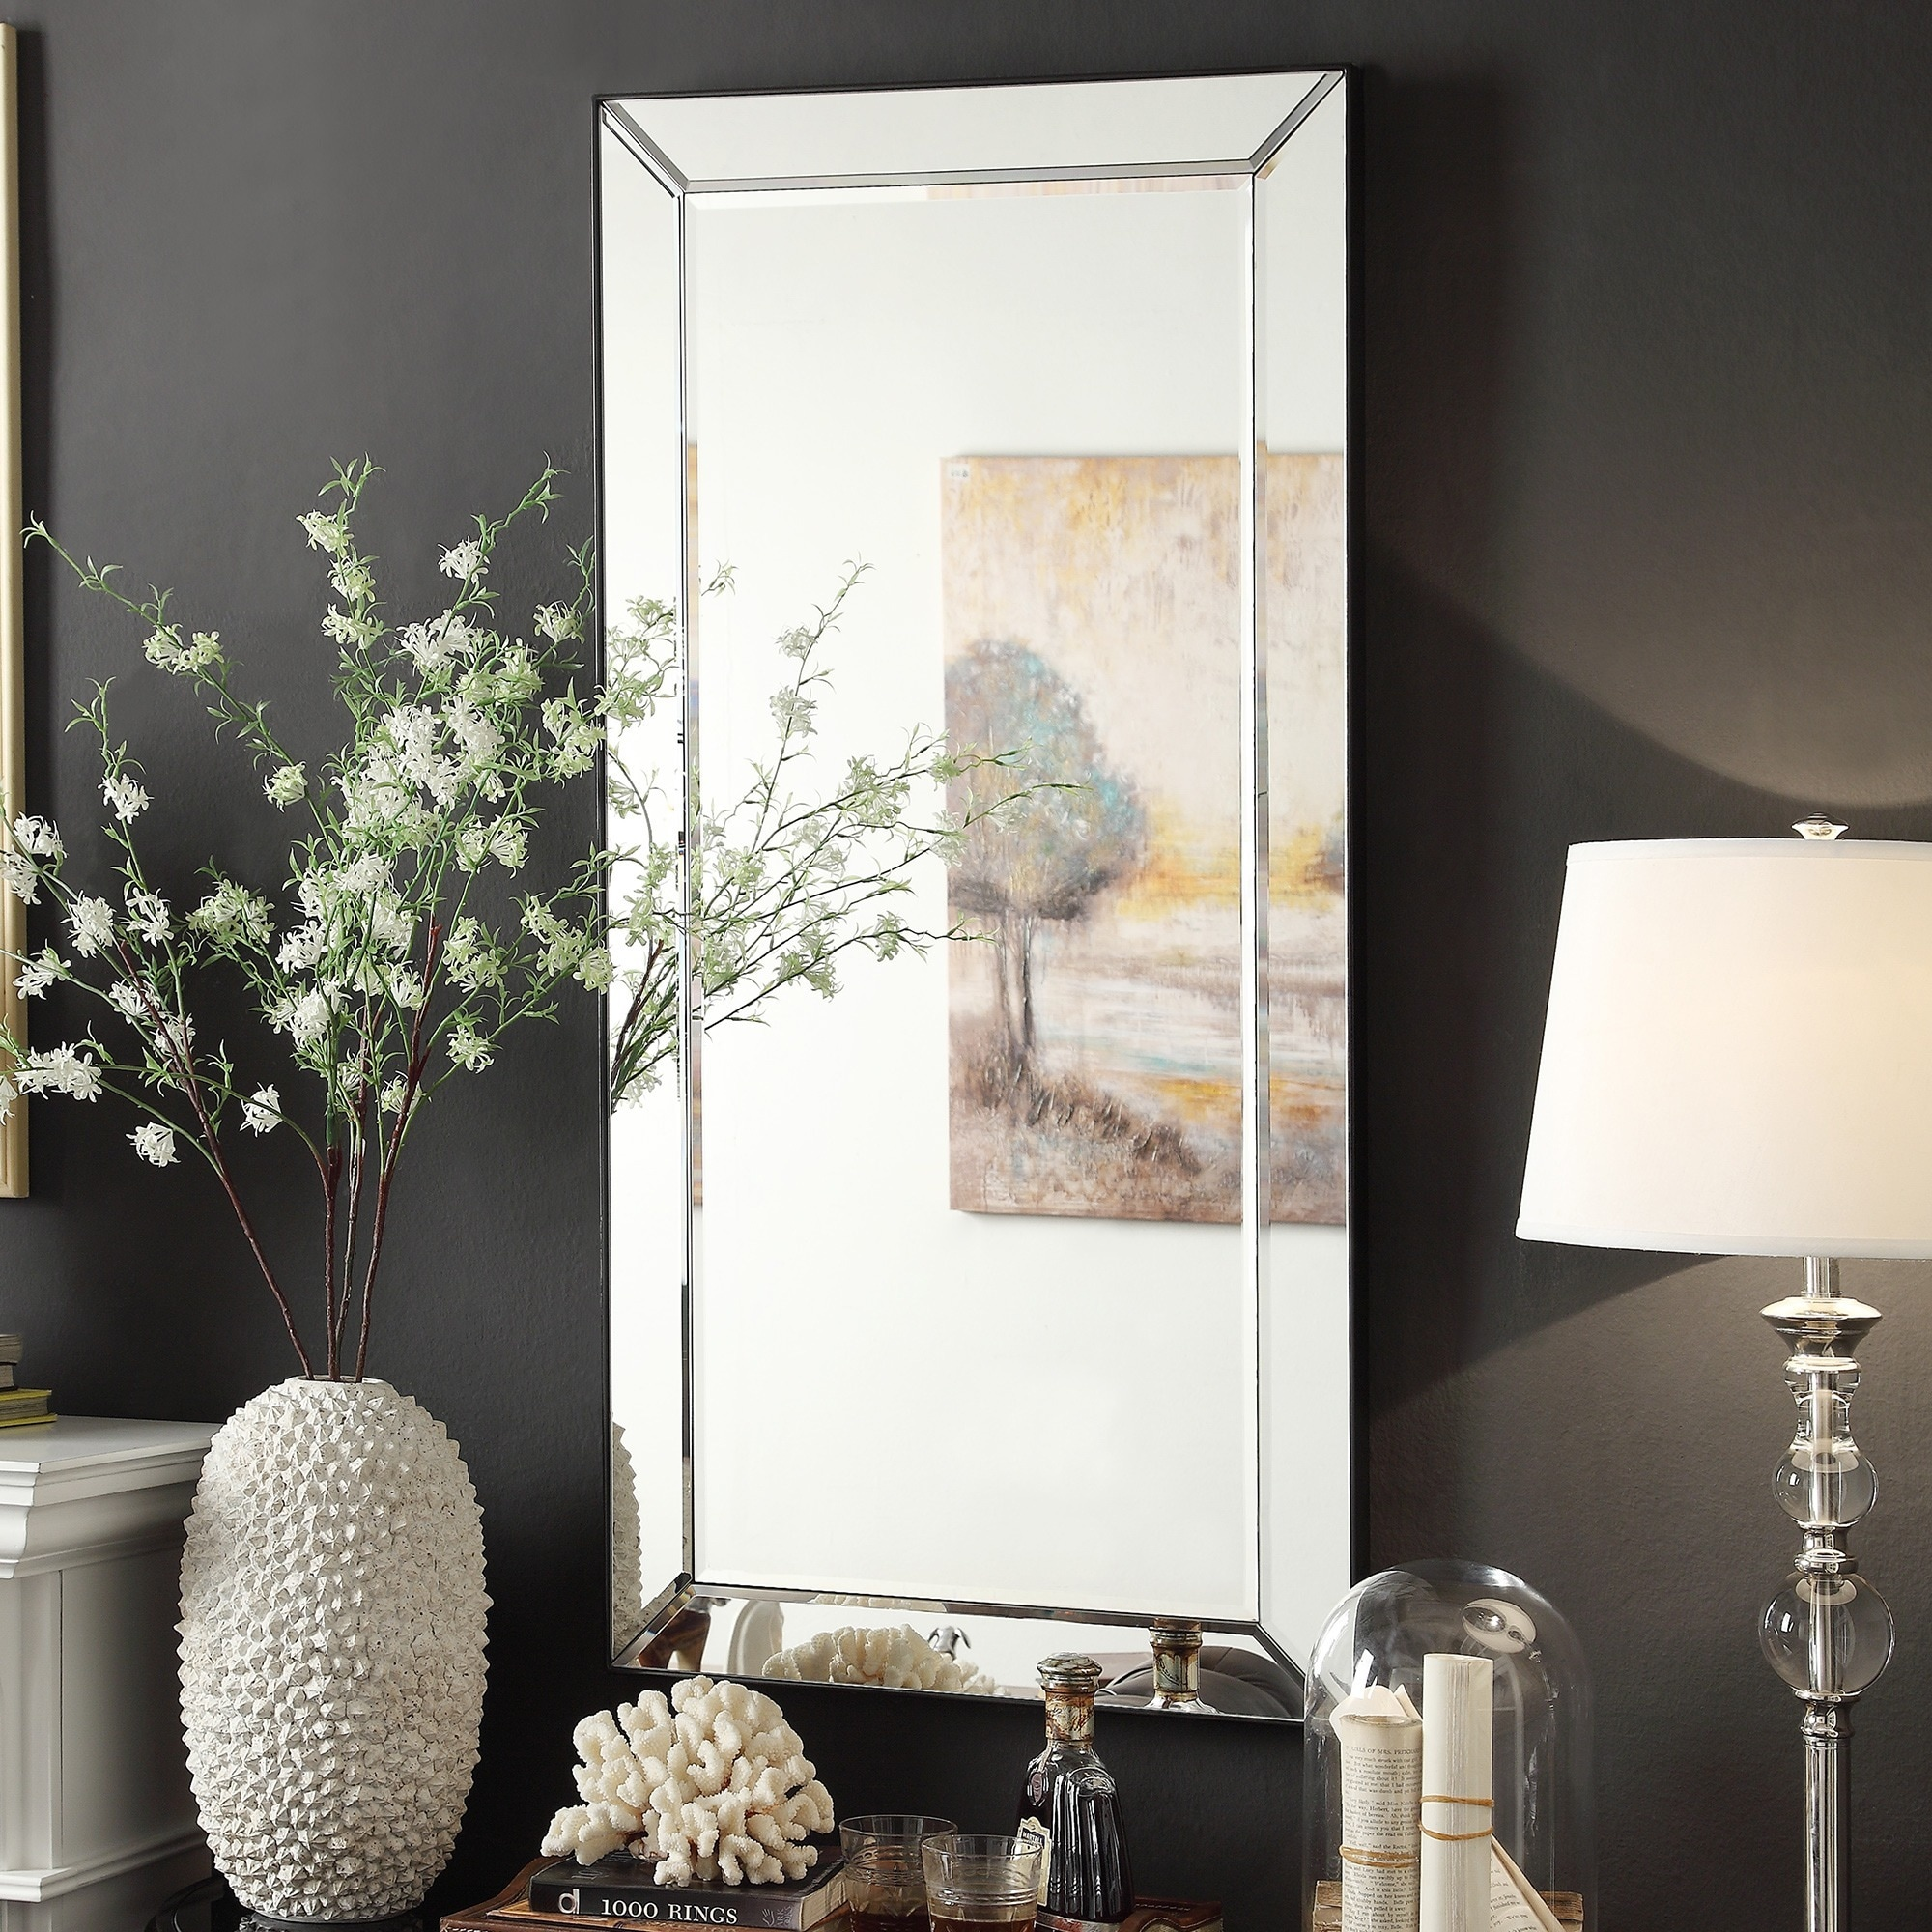 Conrad Bevel Mirrored Frame Rectangular Accent Wall Mirror by iNSPIRE Q  Bold - Free Shipping Today - Overstock.com - 16796044